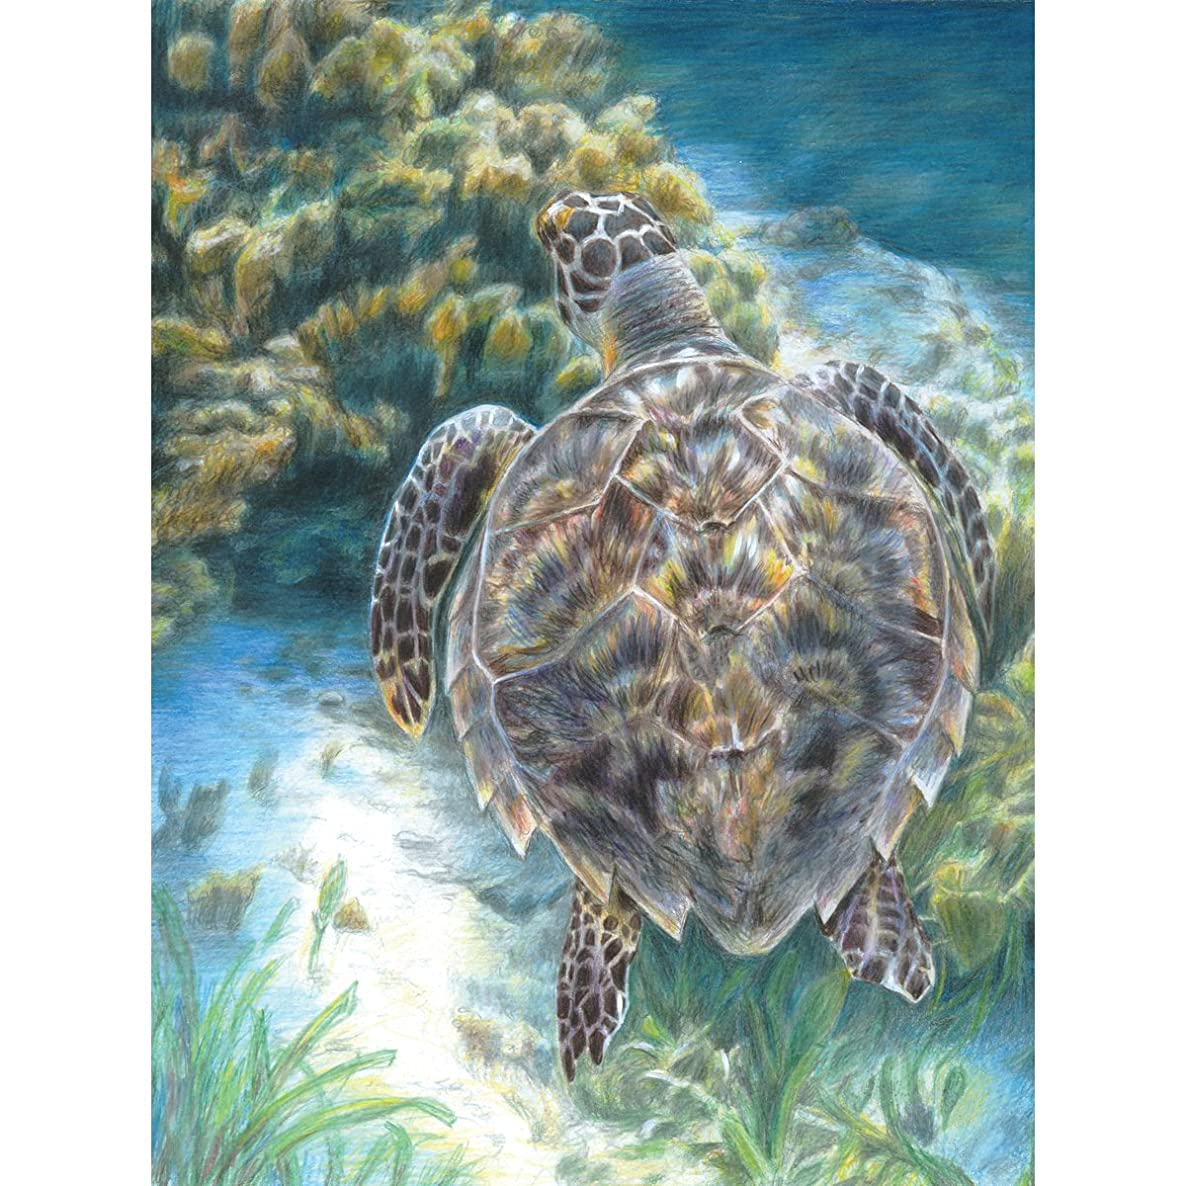 Royal Brush Color Pencil by Number Kit, 8.75 by 11.75-Inch, Sea Turtle